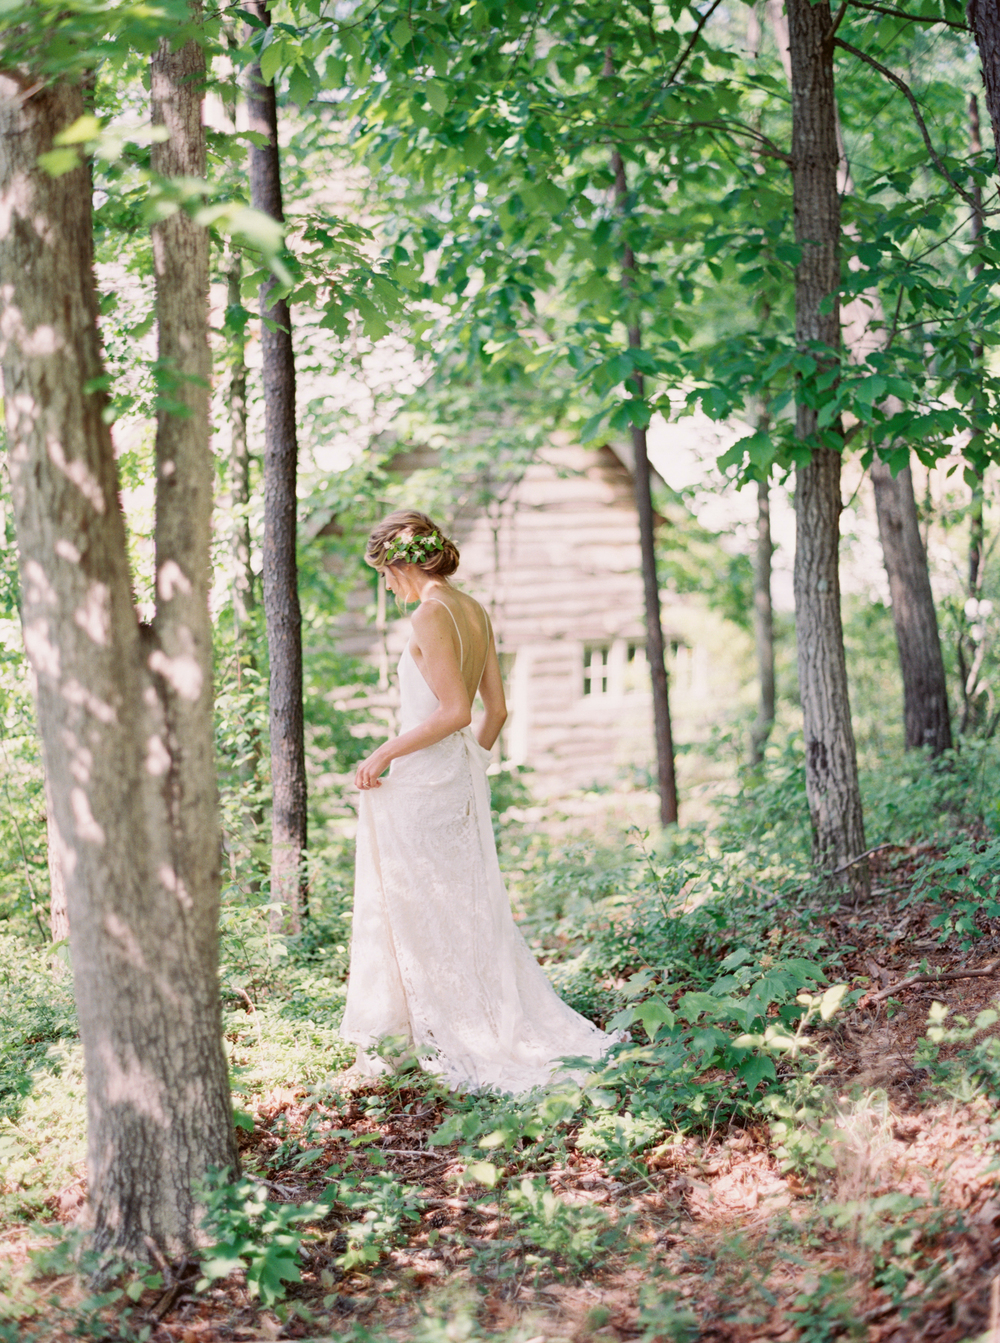 brushfire_photography_mike_and_brit_hansen_pv_takeover_brushfires_vision_contax645_fuji400h_lewis_smith_lake_alabama_belle_lumiere_magazine_ginny_au_twigss_floral_gossamer_sp3000_photovisionprints.jpg